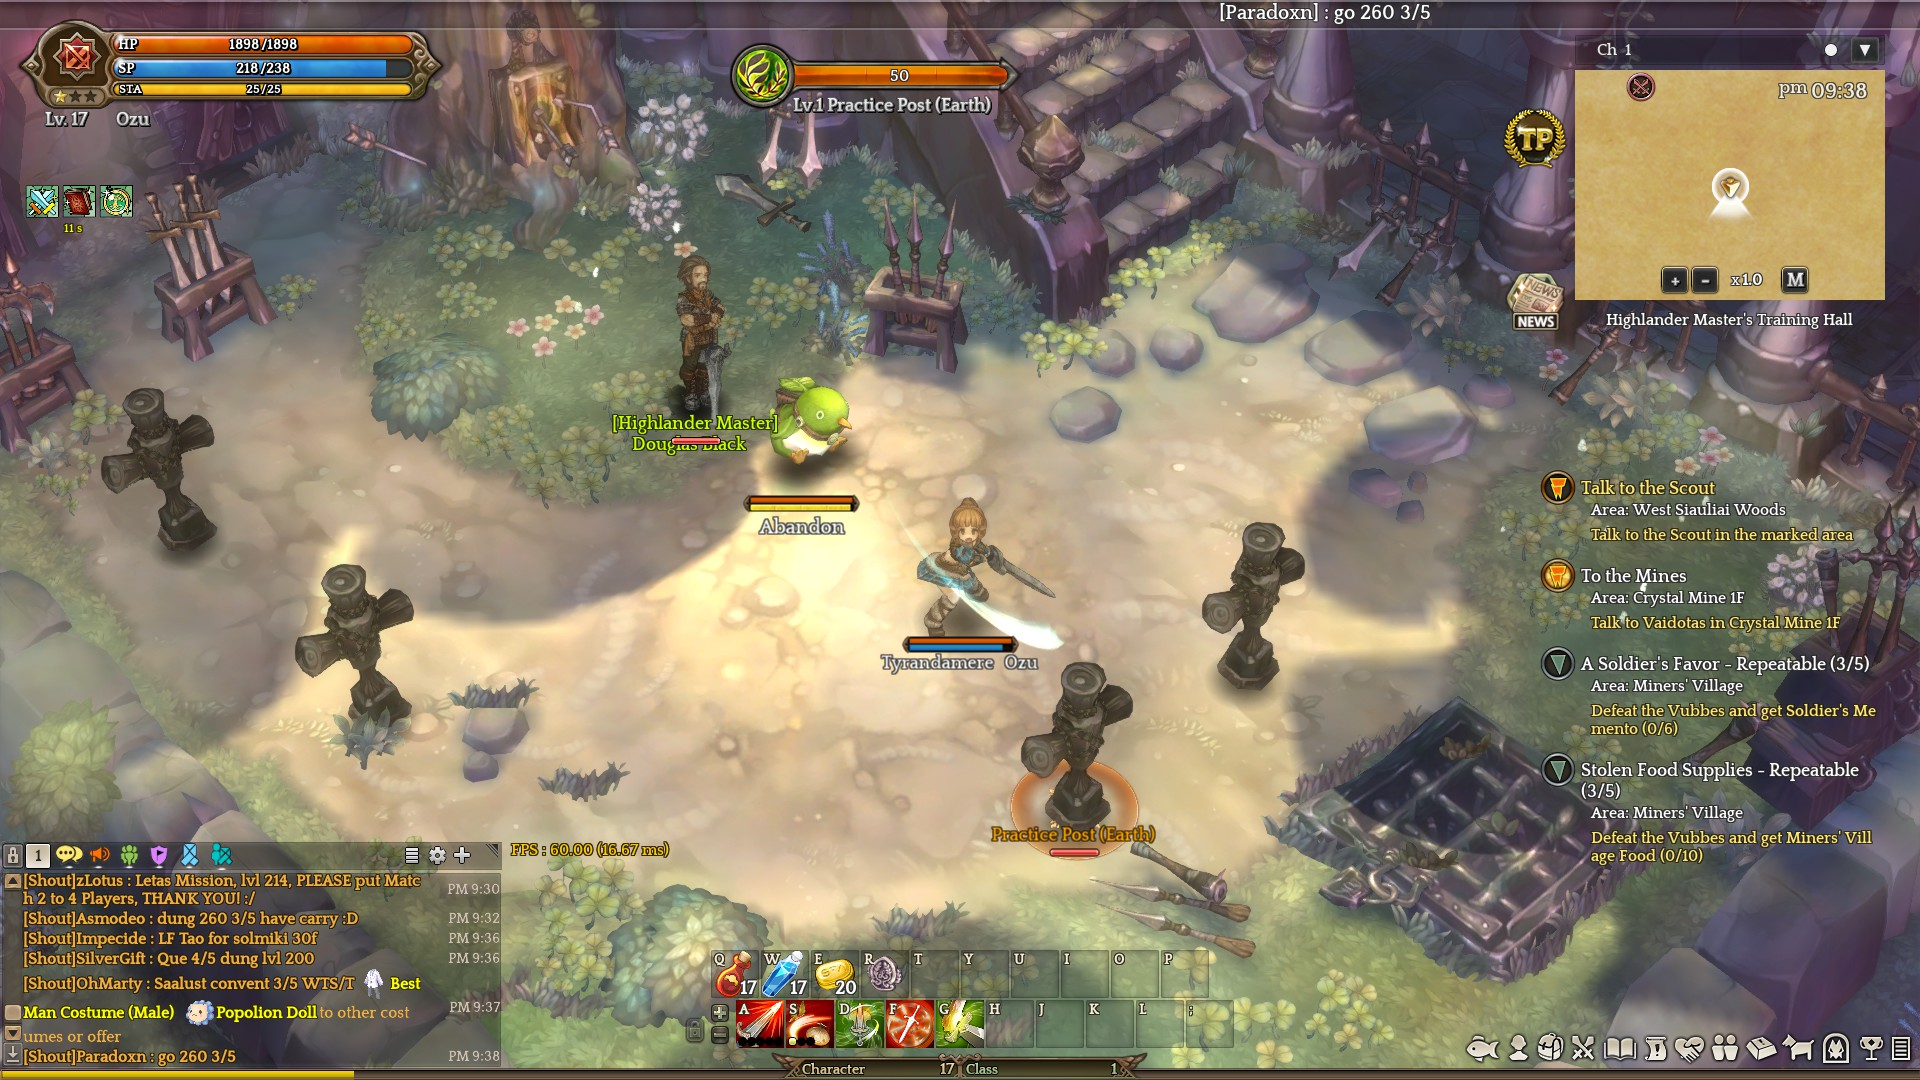 Adventurer's Journal 1 - Tree of Savior